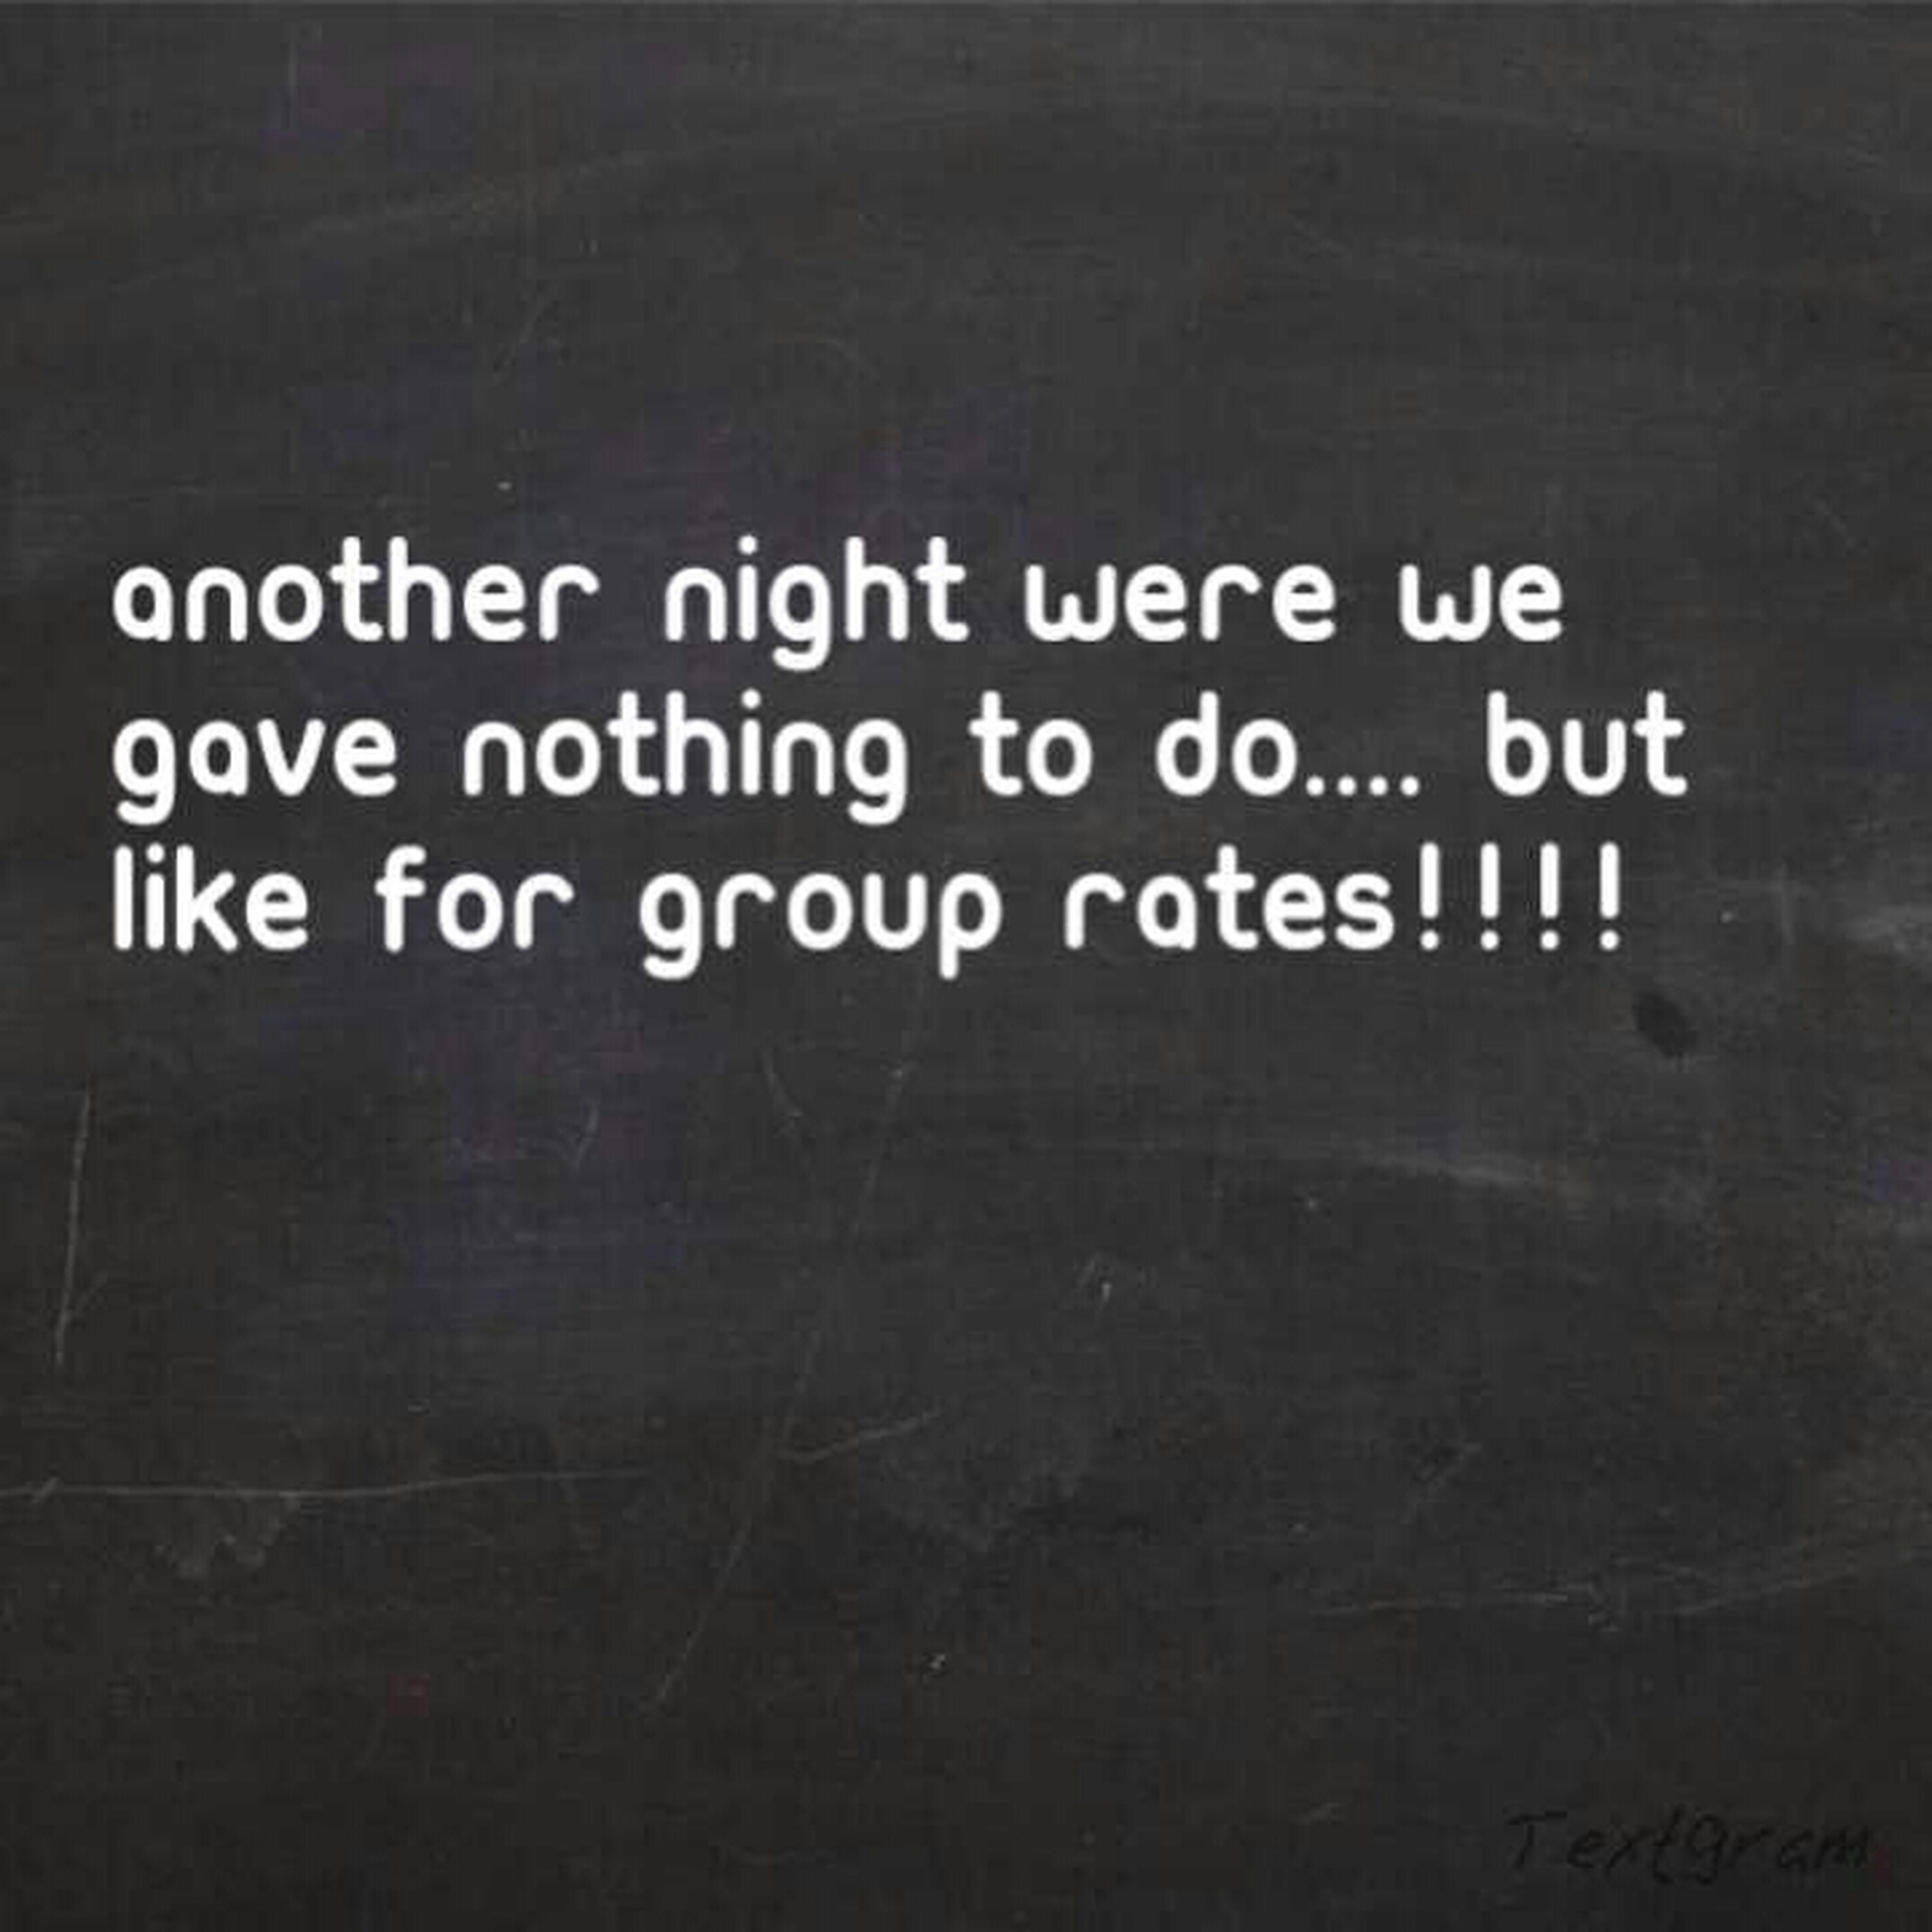 Group Rates!!!